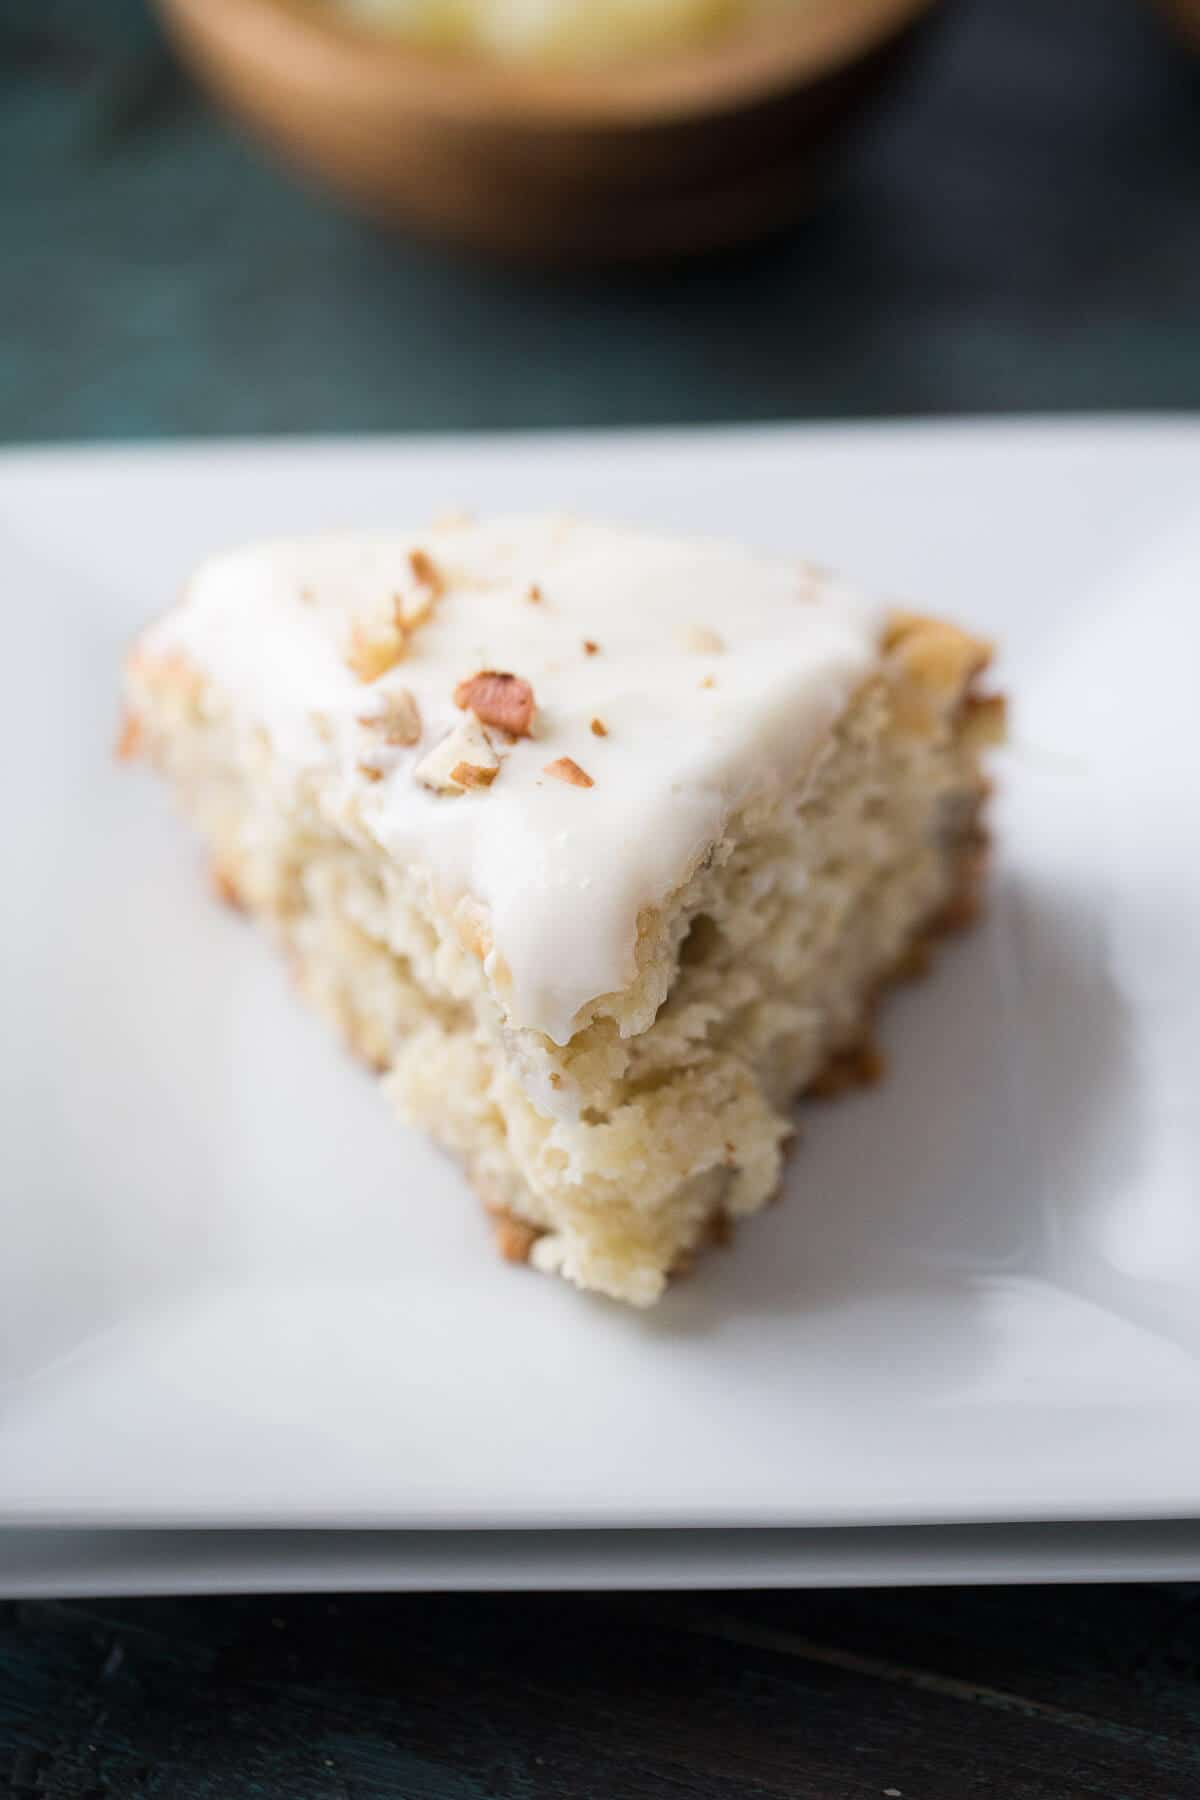 A simple coffee cake that imitates the classic hummingbird cake recipe!